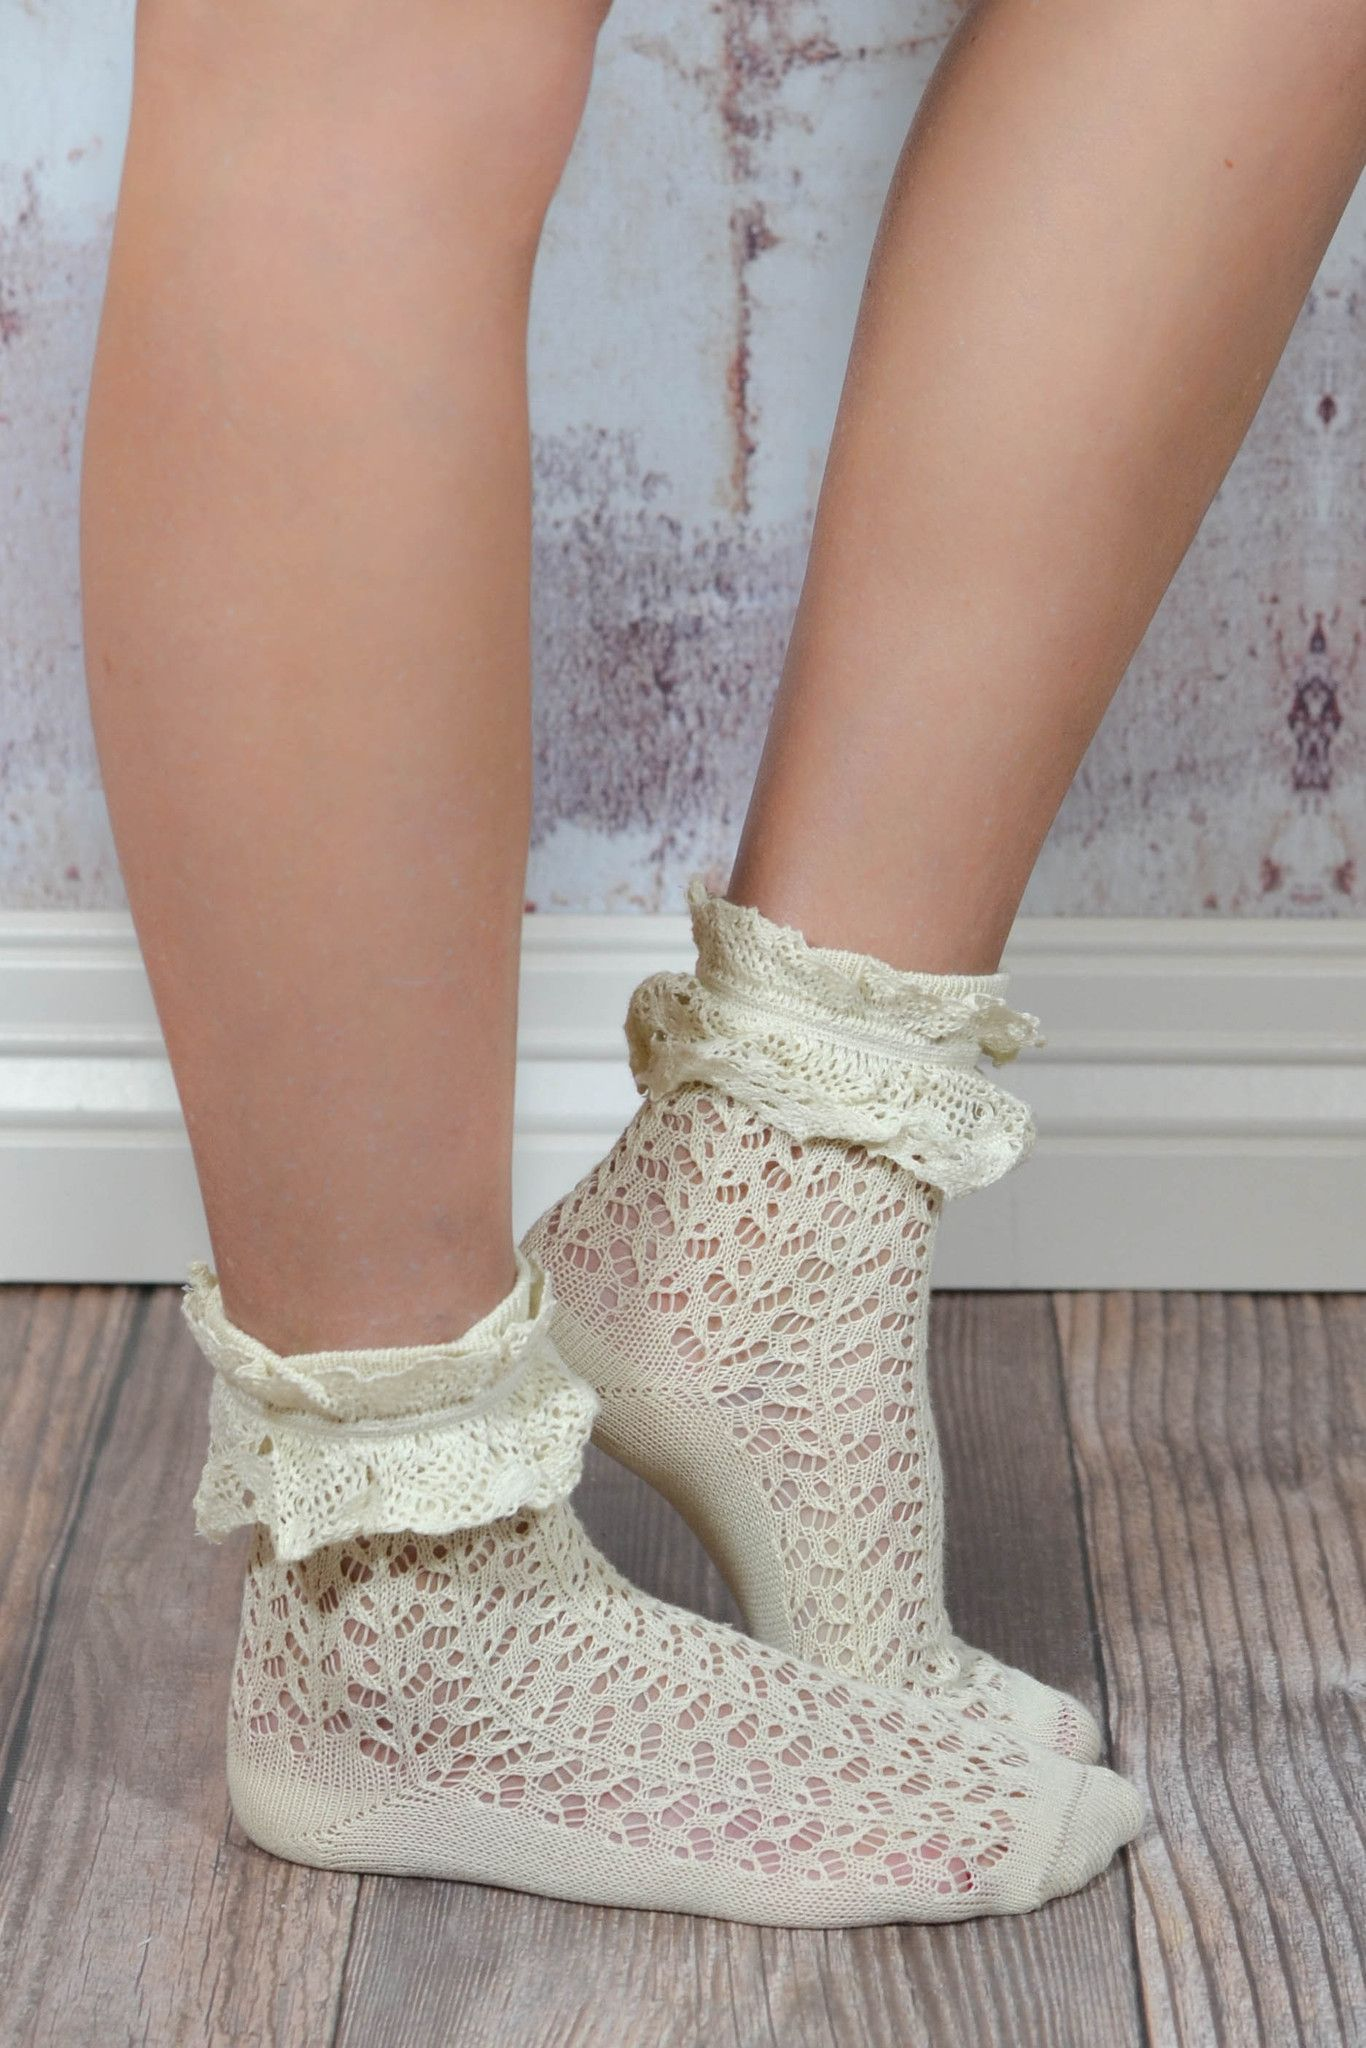 d5fd98ce3cf2a Ivory Ruffle Lace Anklet Sock in 2019